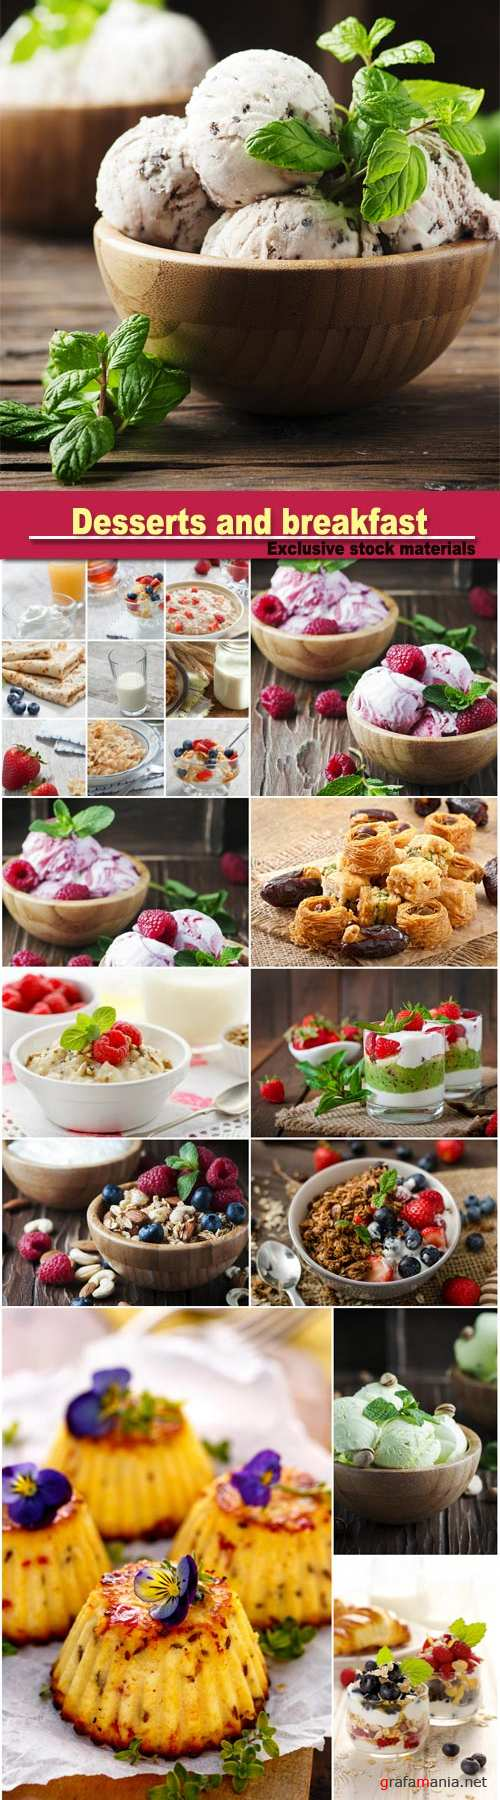 Delicious desserts and healthy breakfast